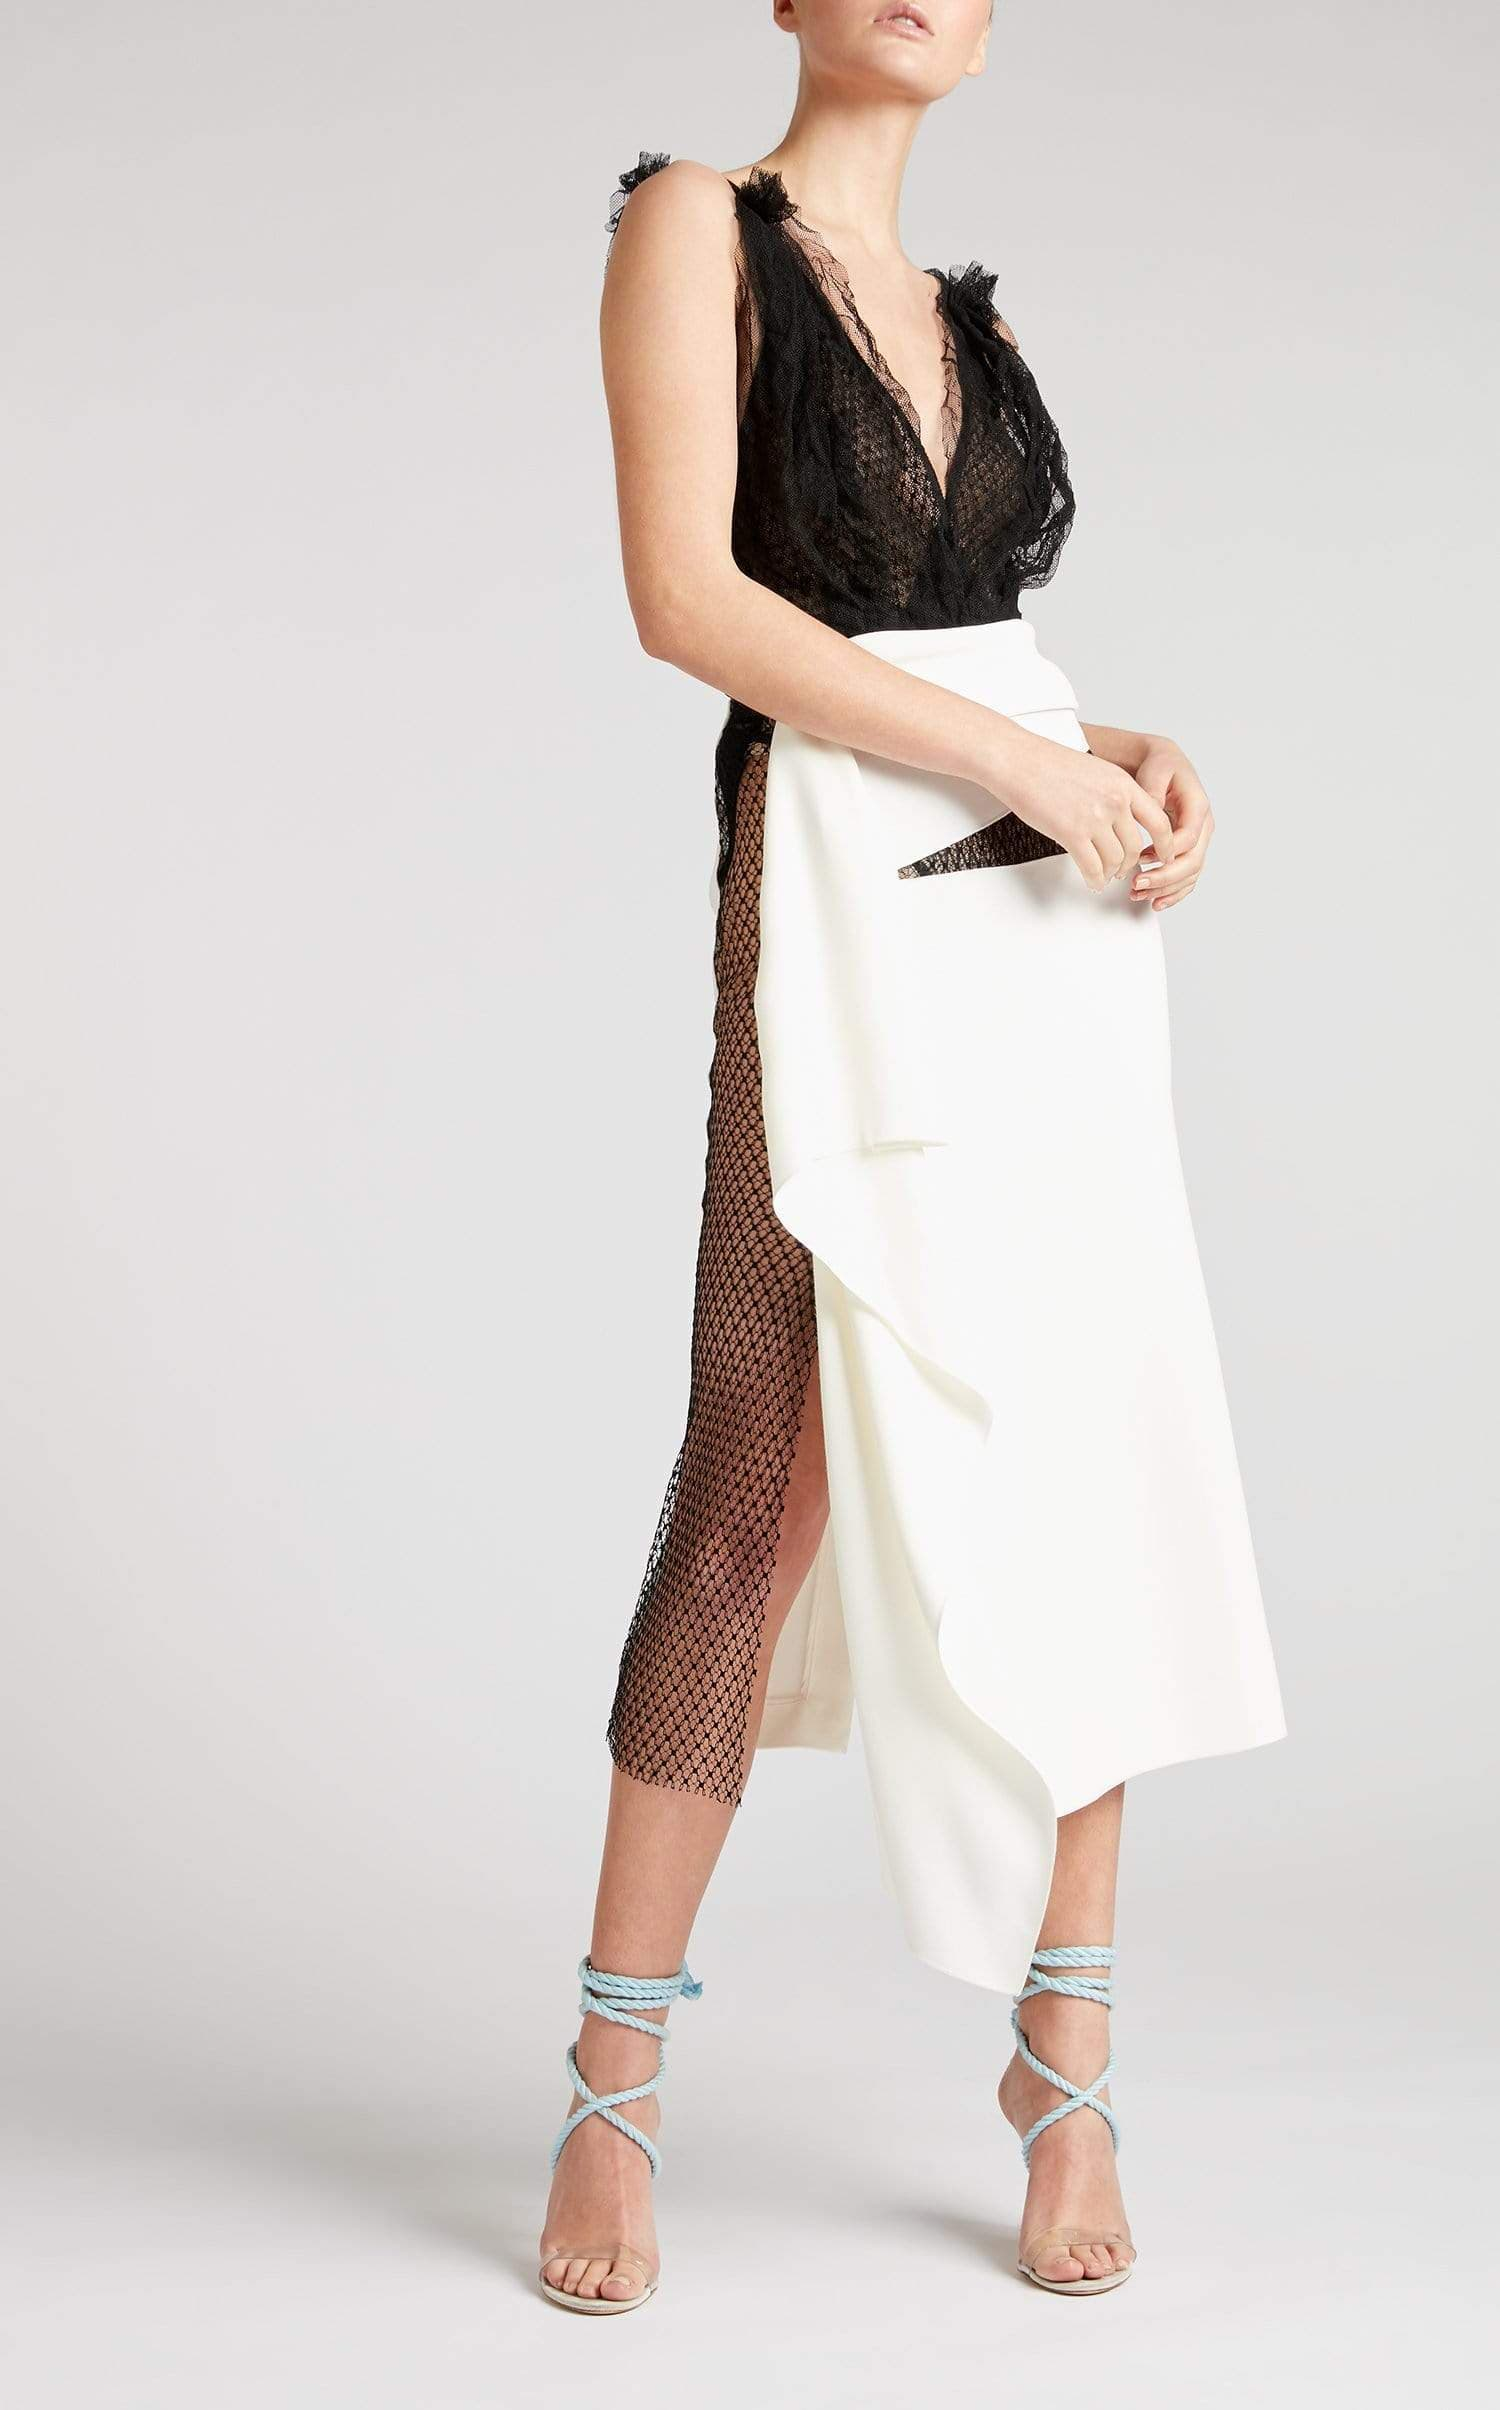 Kelley Skirt In White/Black from Roland Mouret